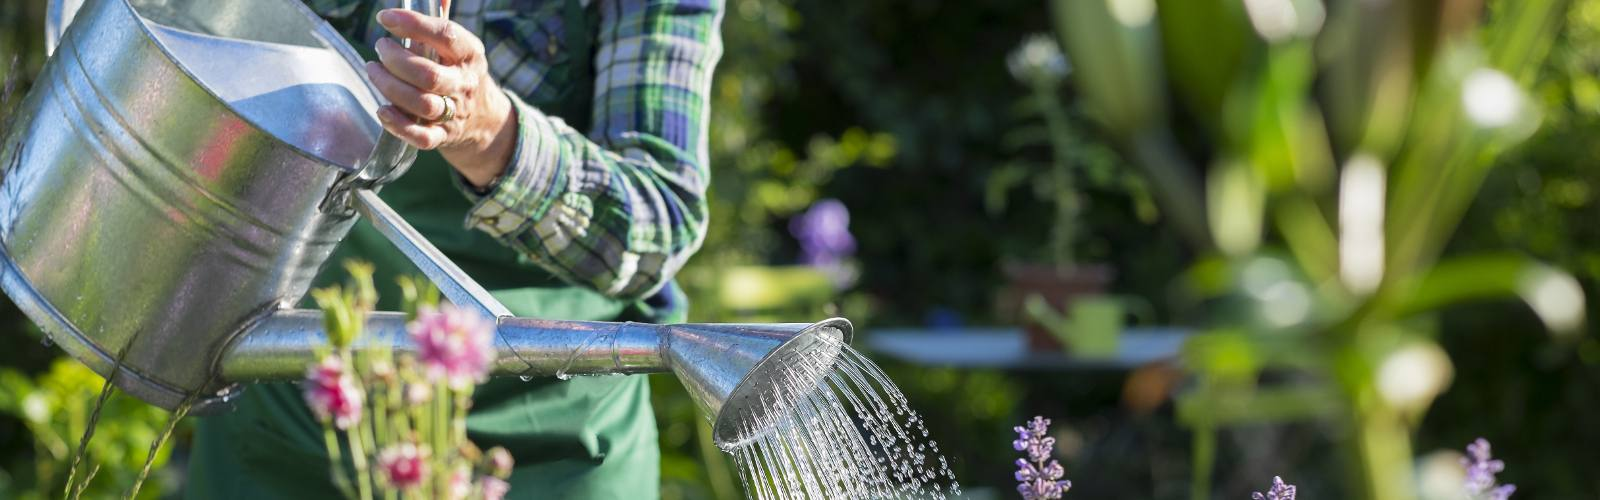 How to keep house and garden plants happy when you go away